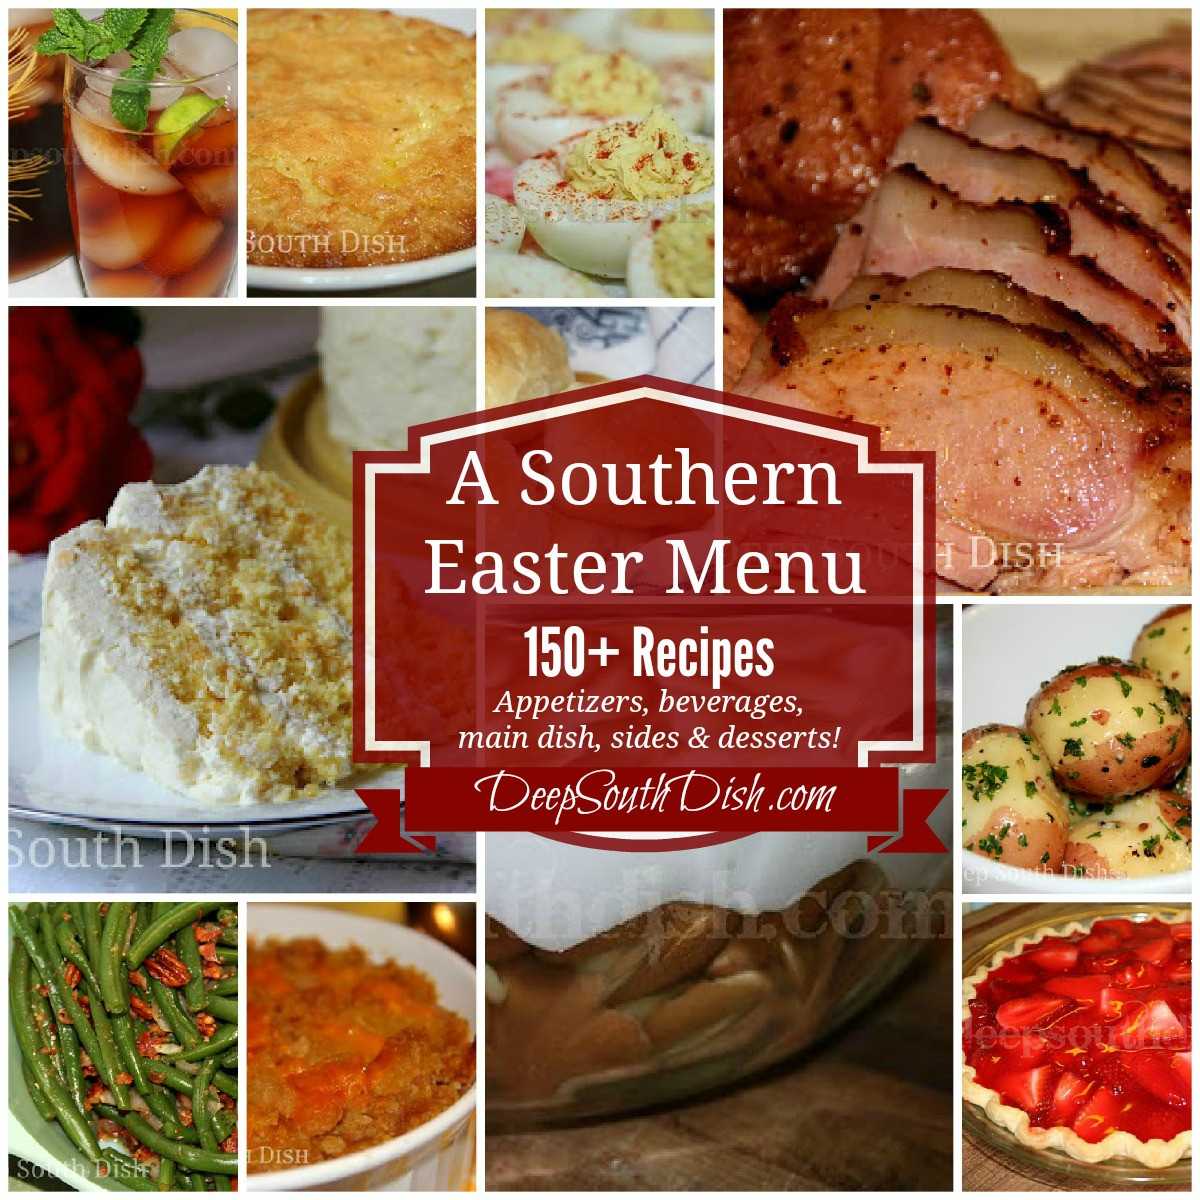 Soul Food Christmas Dinner Menu  Deep South Dish Southern Easter Menu Ideas and Recipes